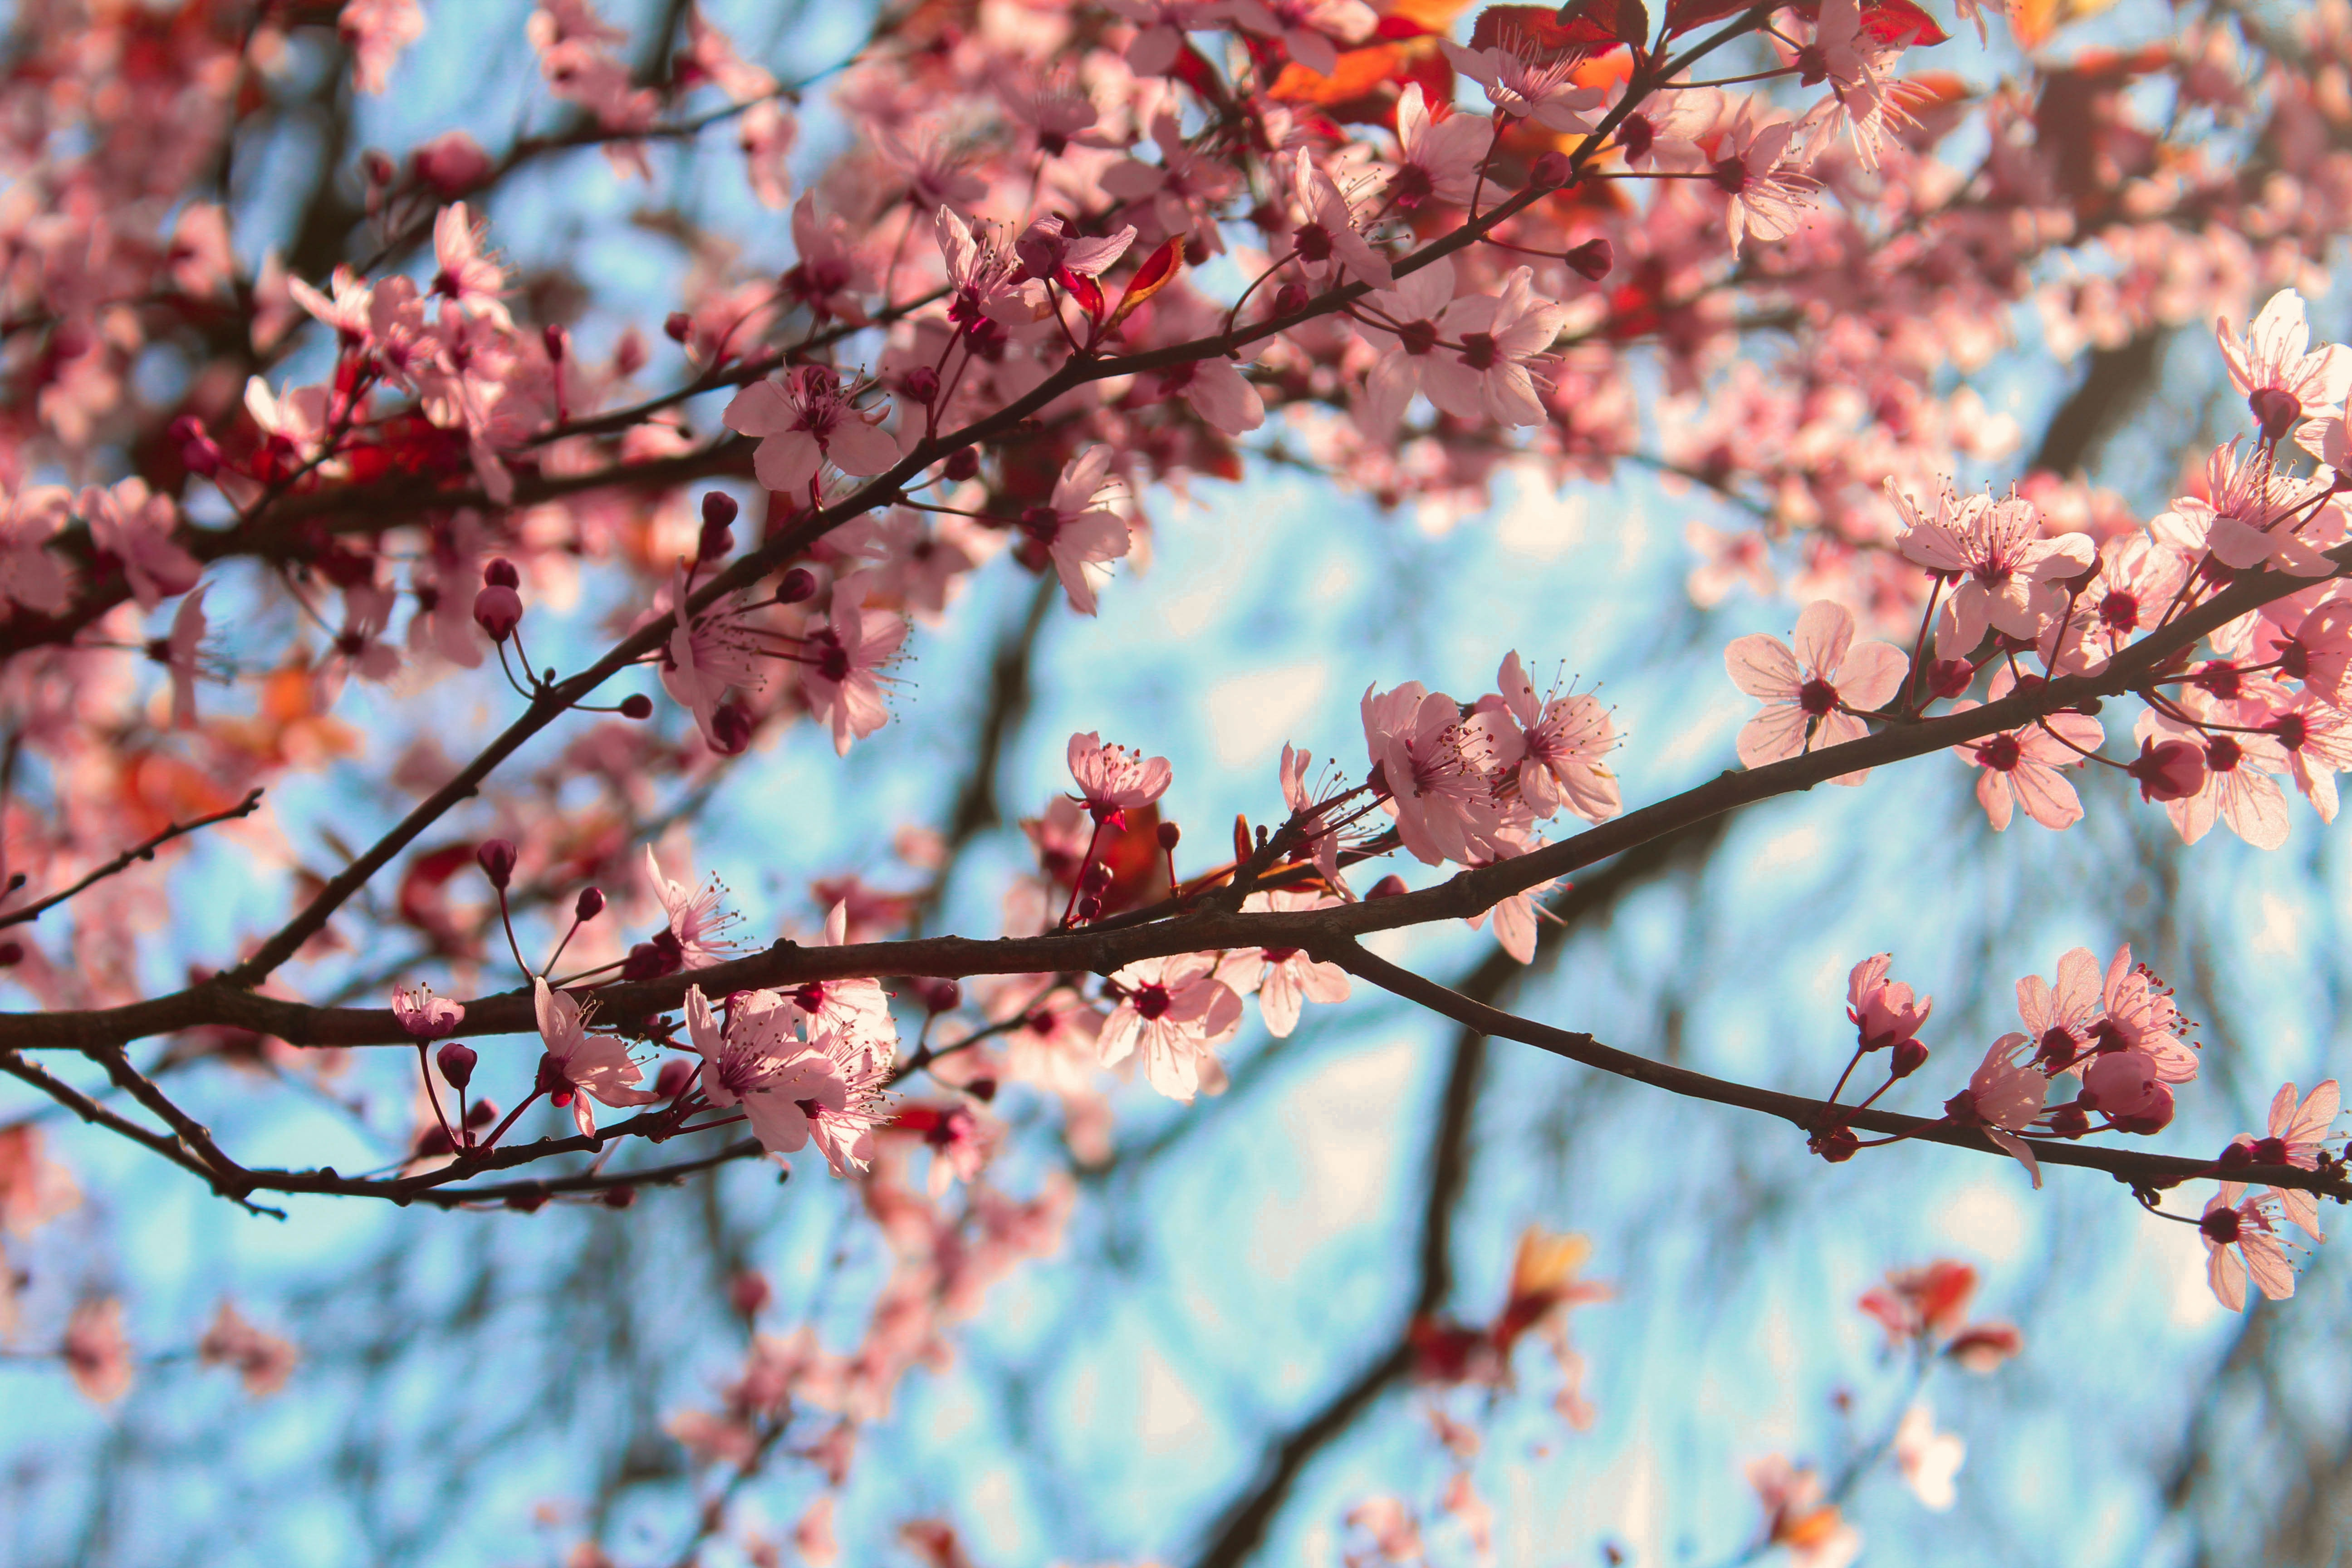 Pink cherry blossom flowers on branches against a pale blue sky